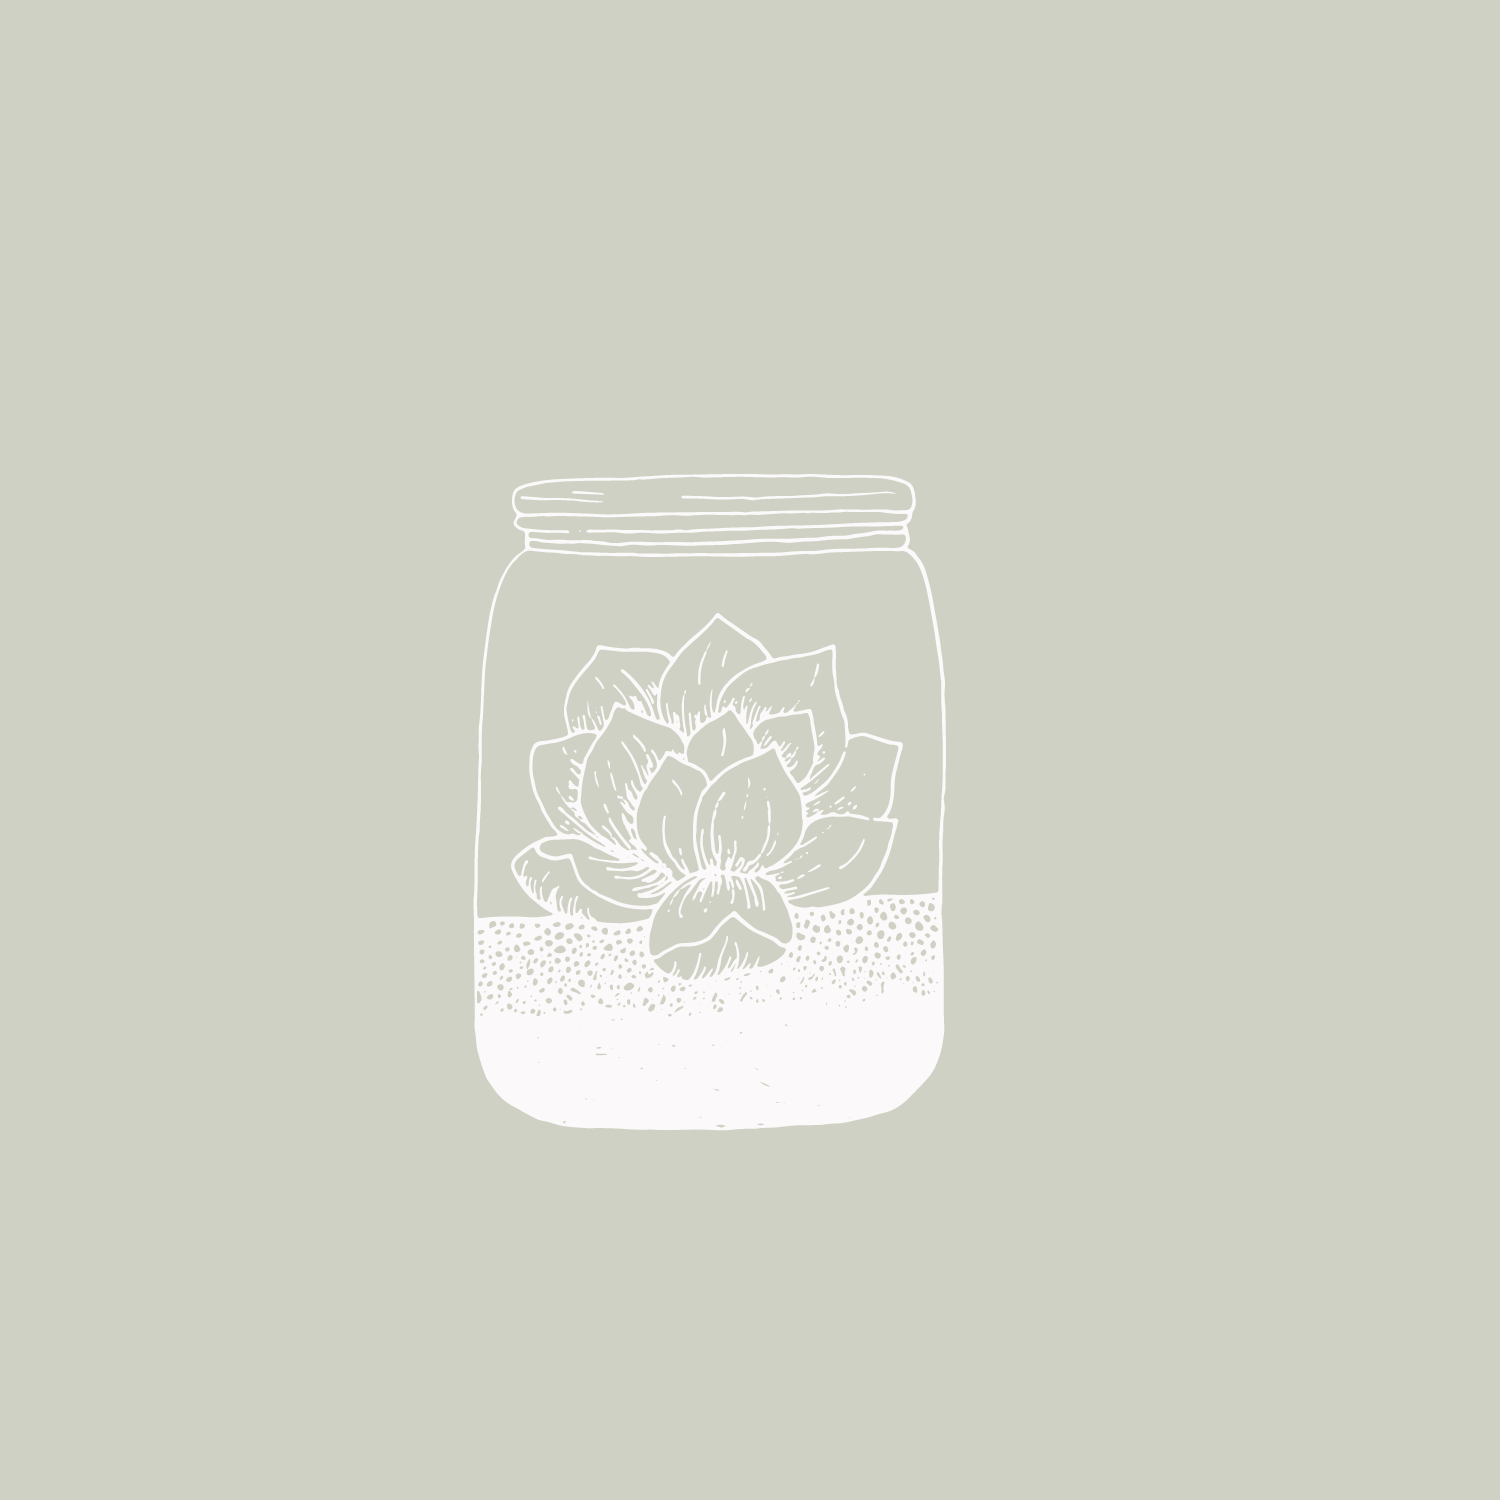 Succulent jar terrarium illustration #the100dayproject by Bea & Bloom Creative Design Studio